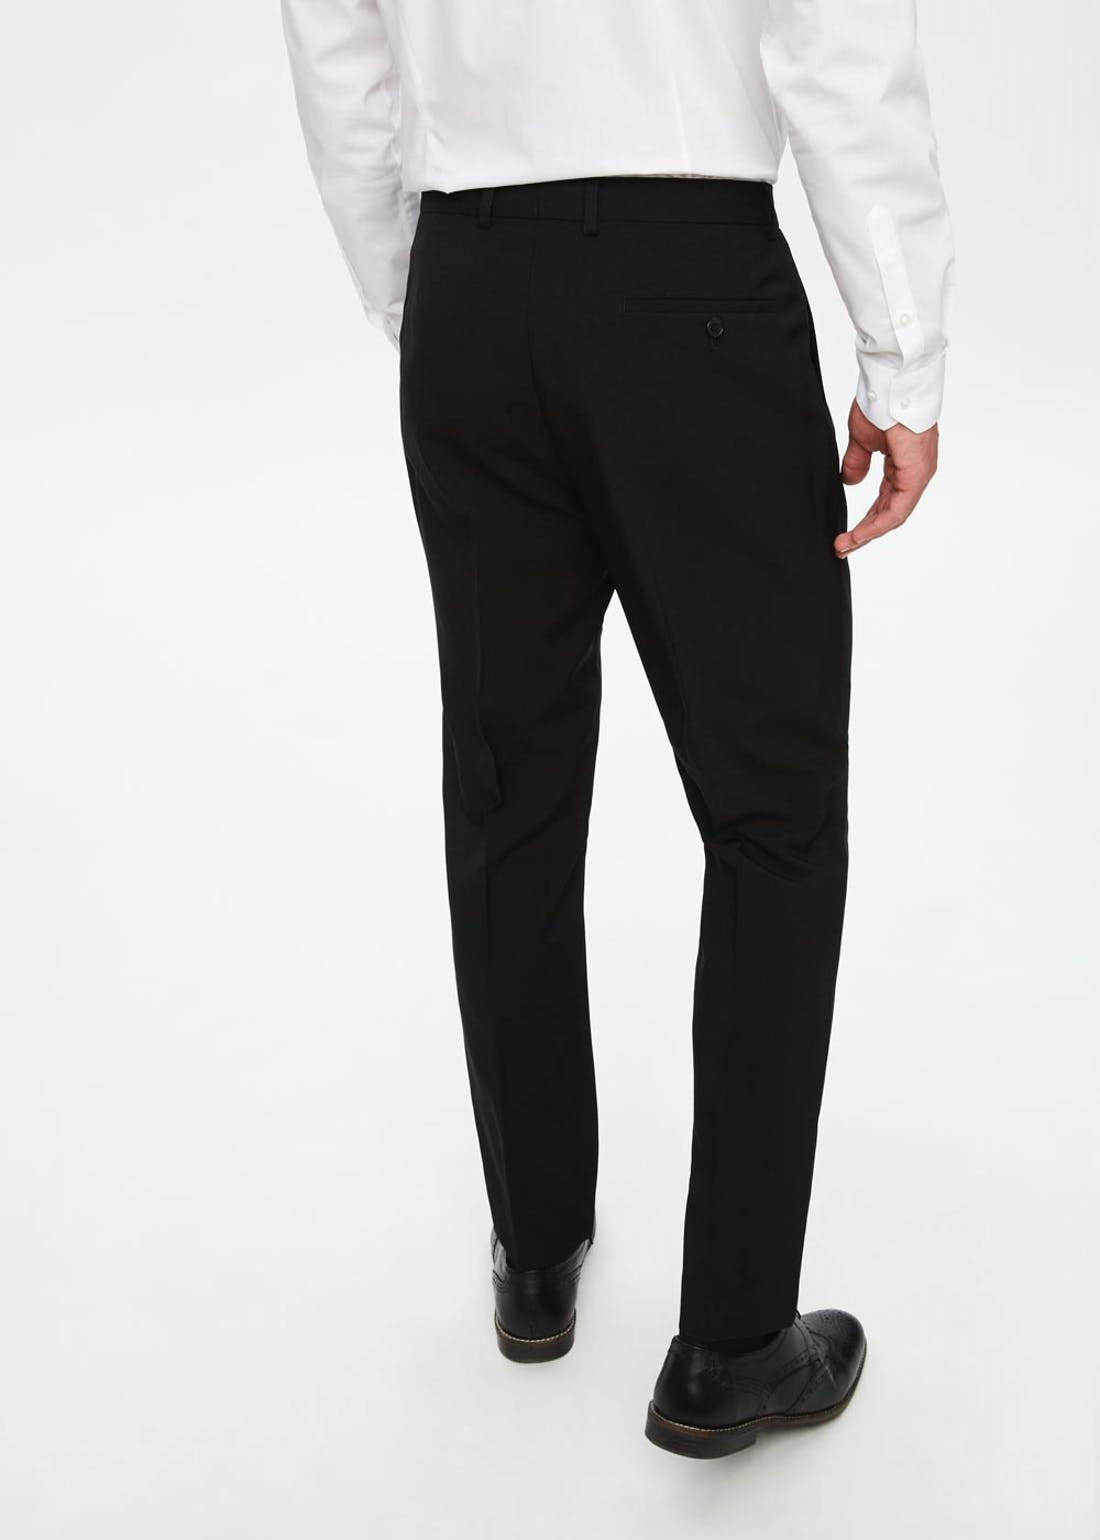 Taylor & Wright Panama Tailored Fit Suit Trousers